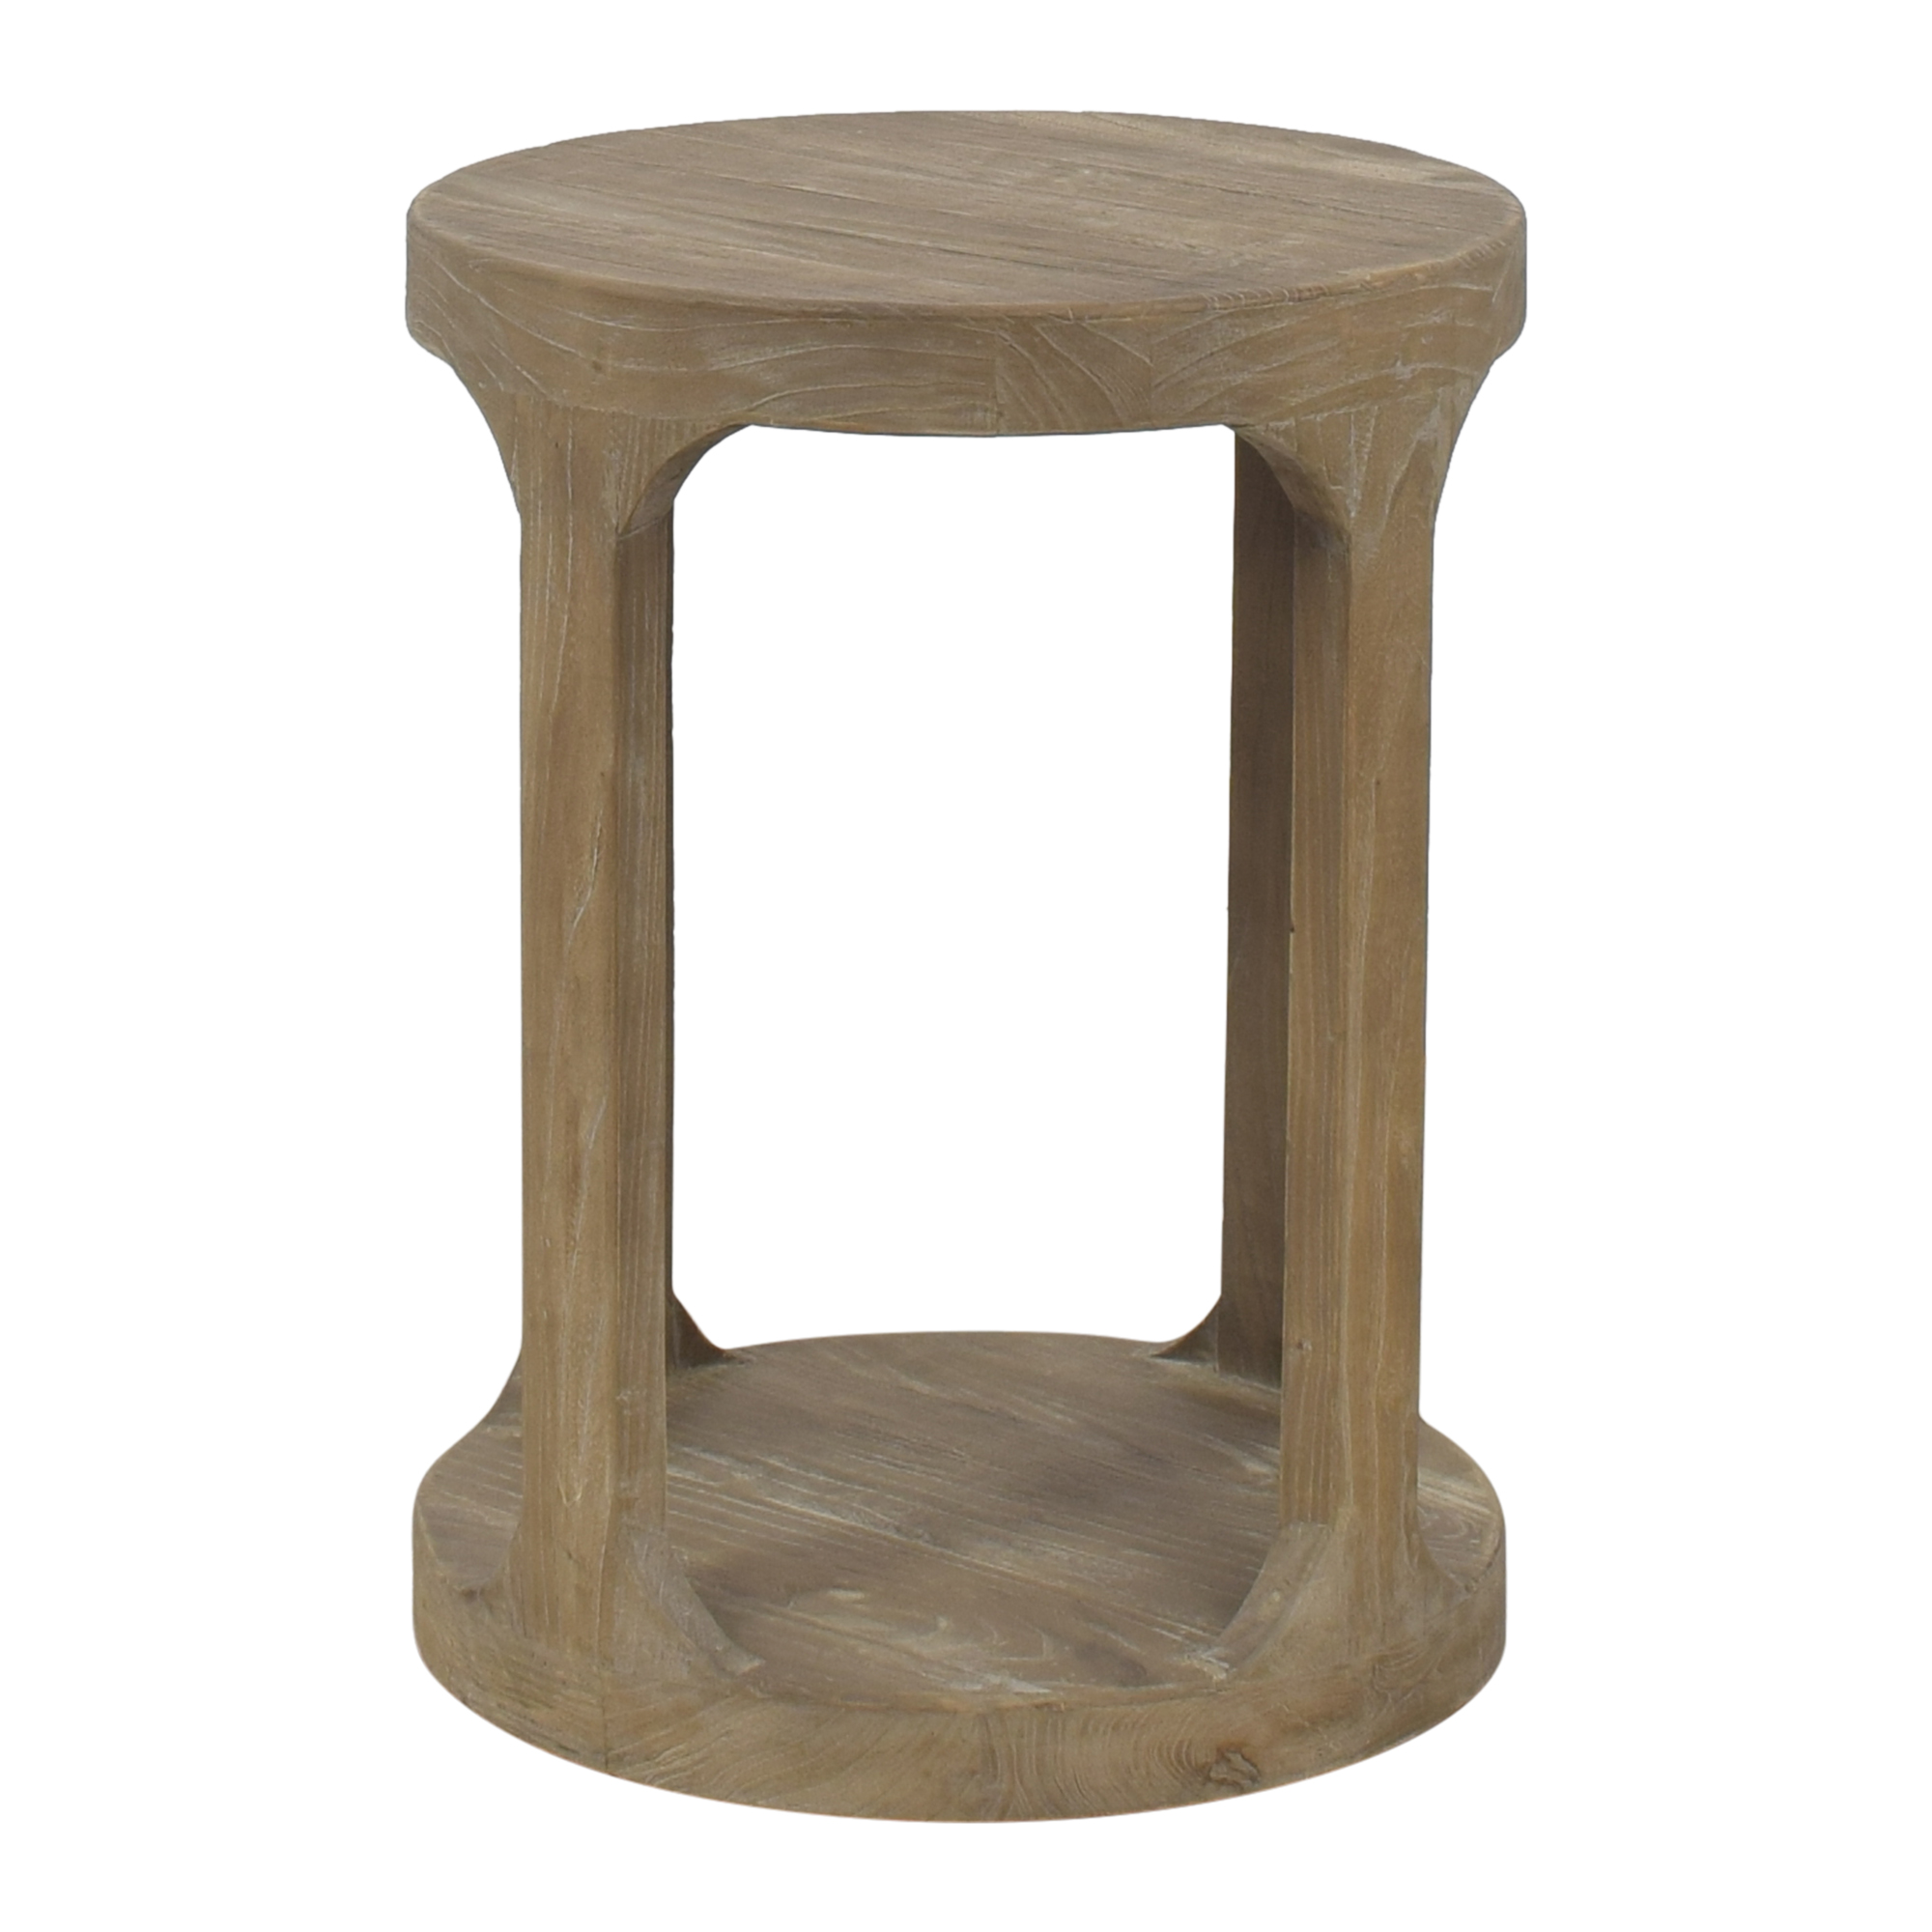 Restoration Hardware Restoration Hardware Martens Round Side Table  nj